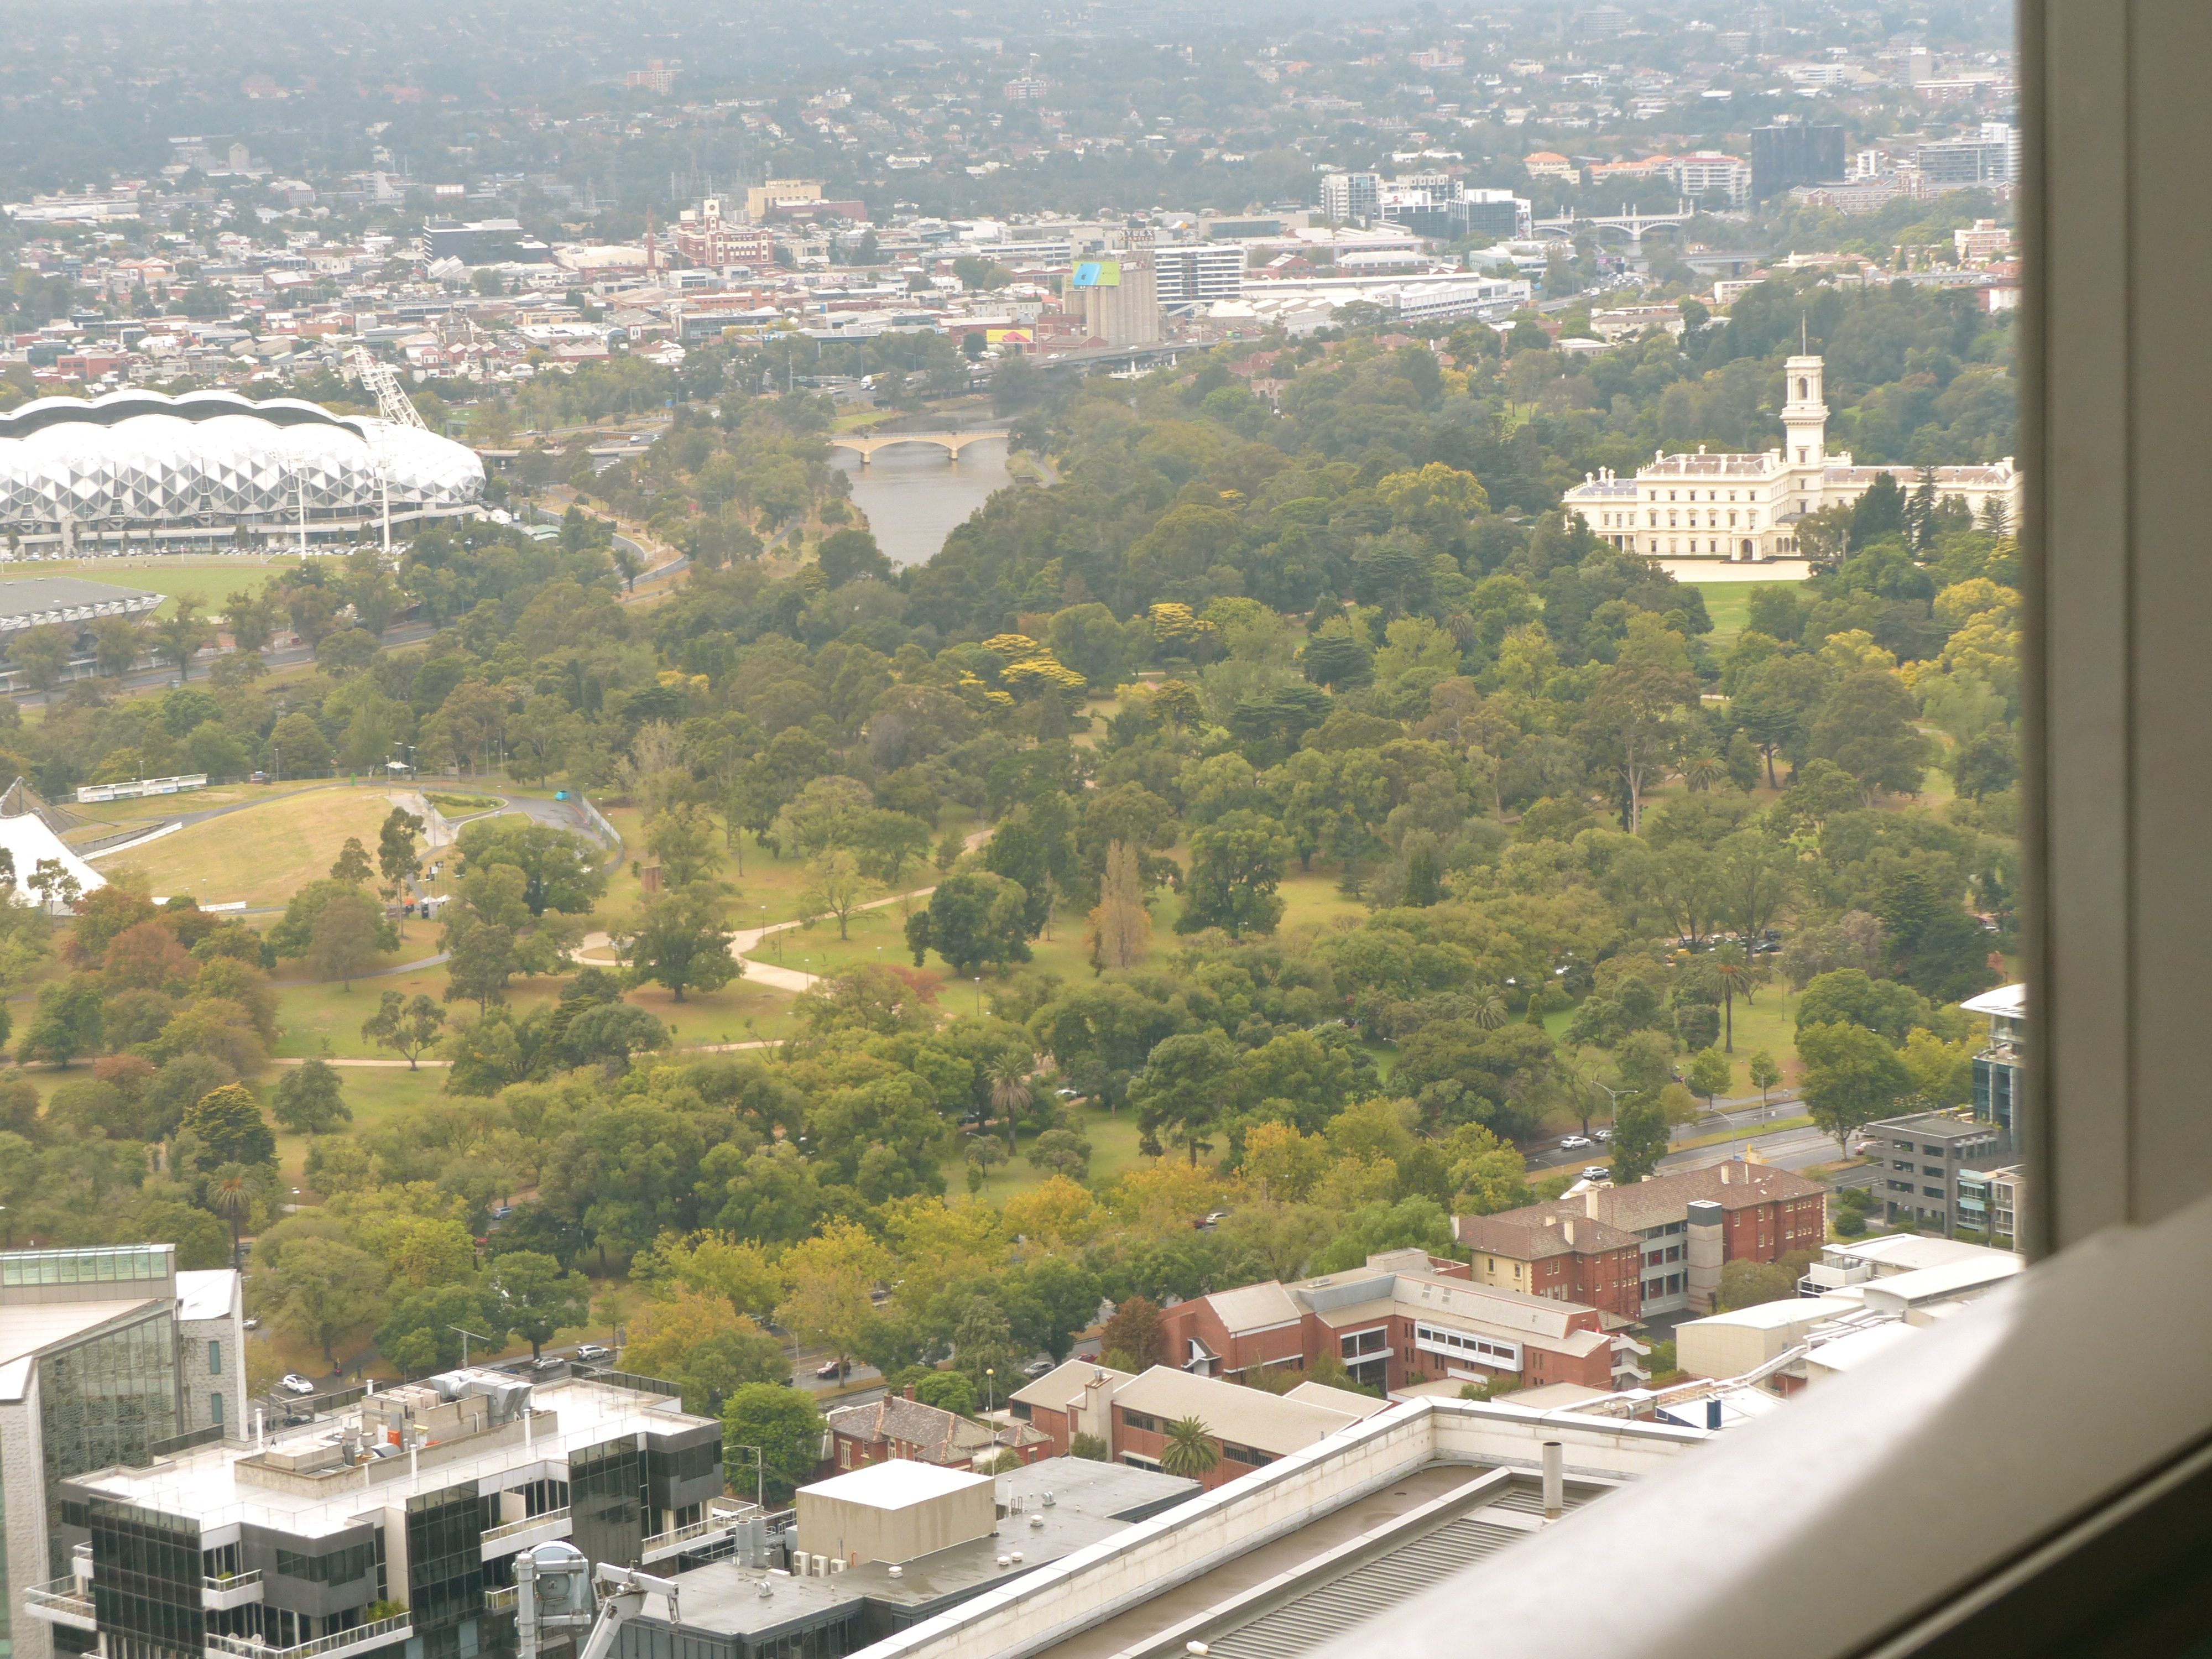 Government House and the MCG